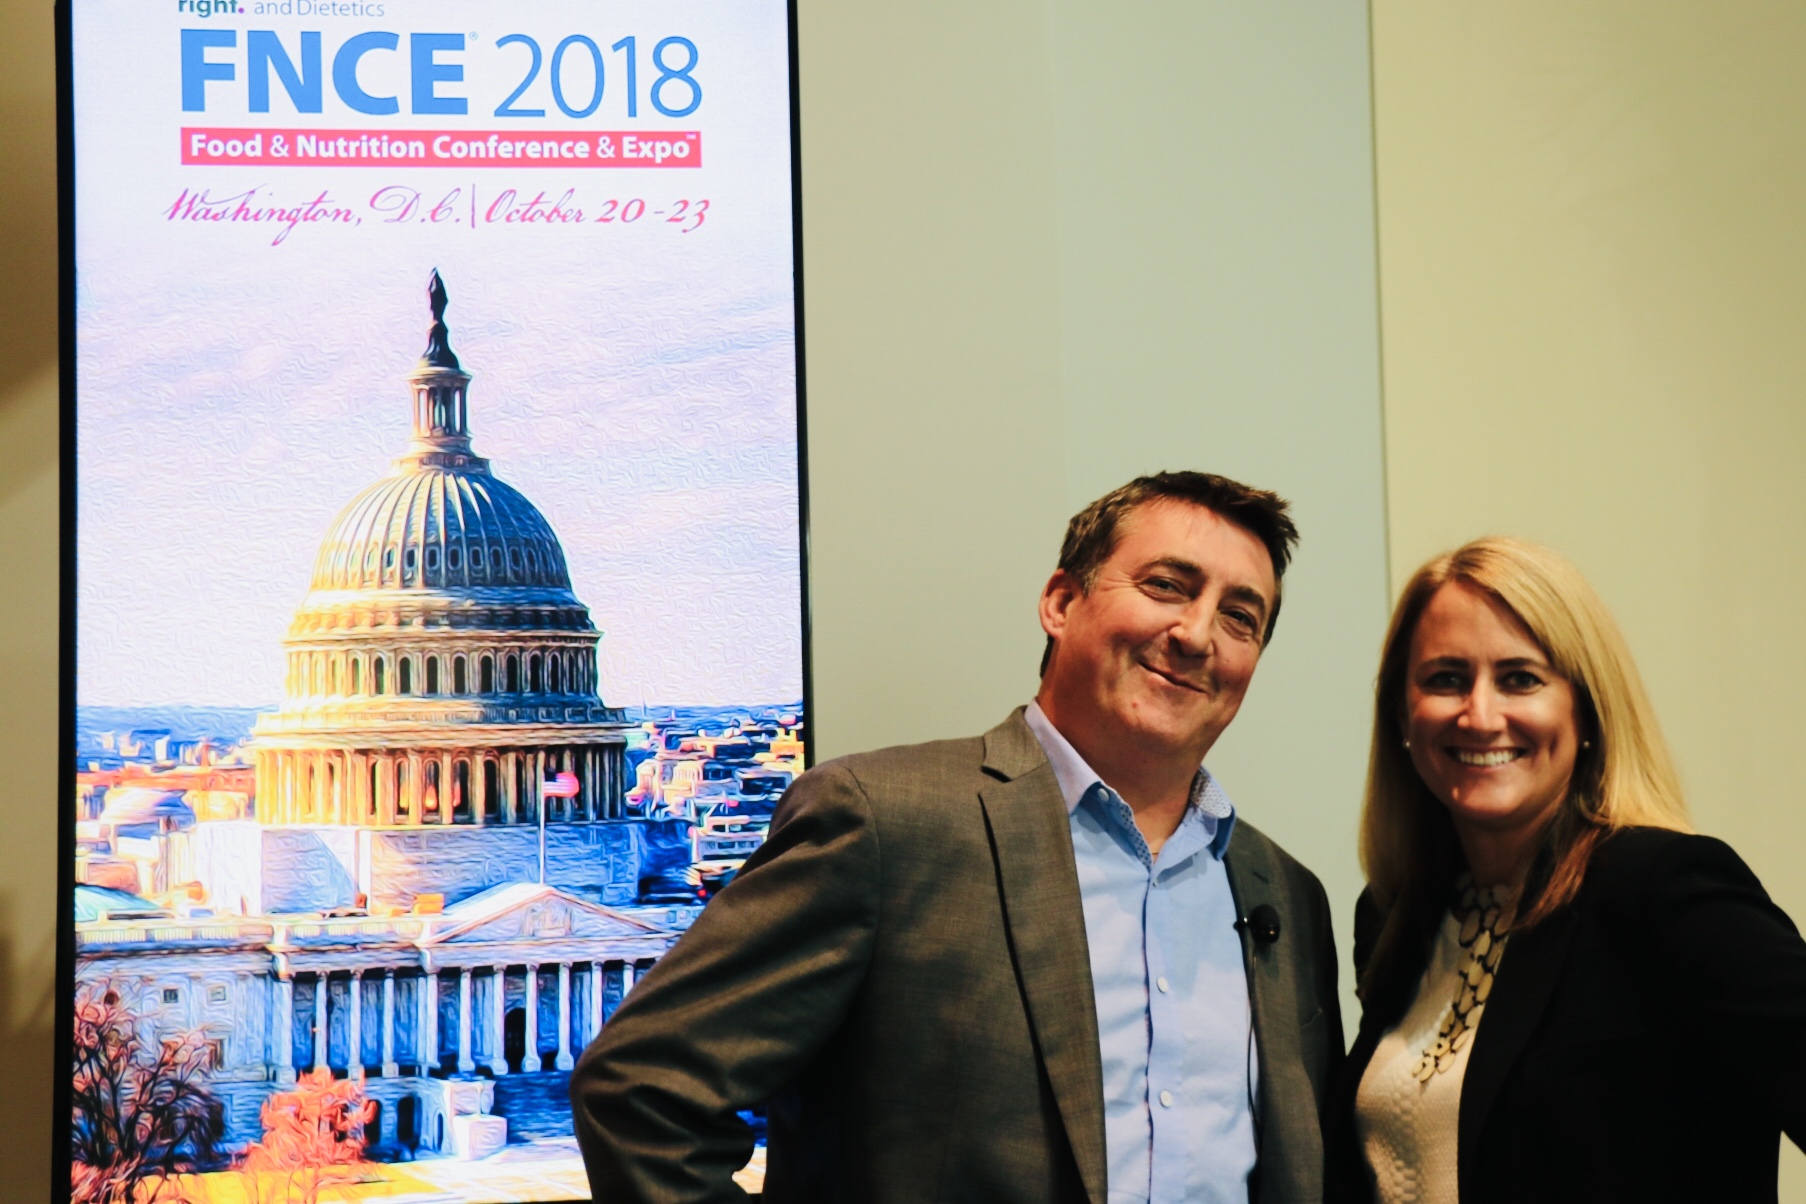 Suzanne and Chris at FNCE 2018